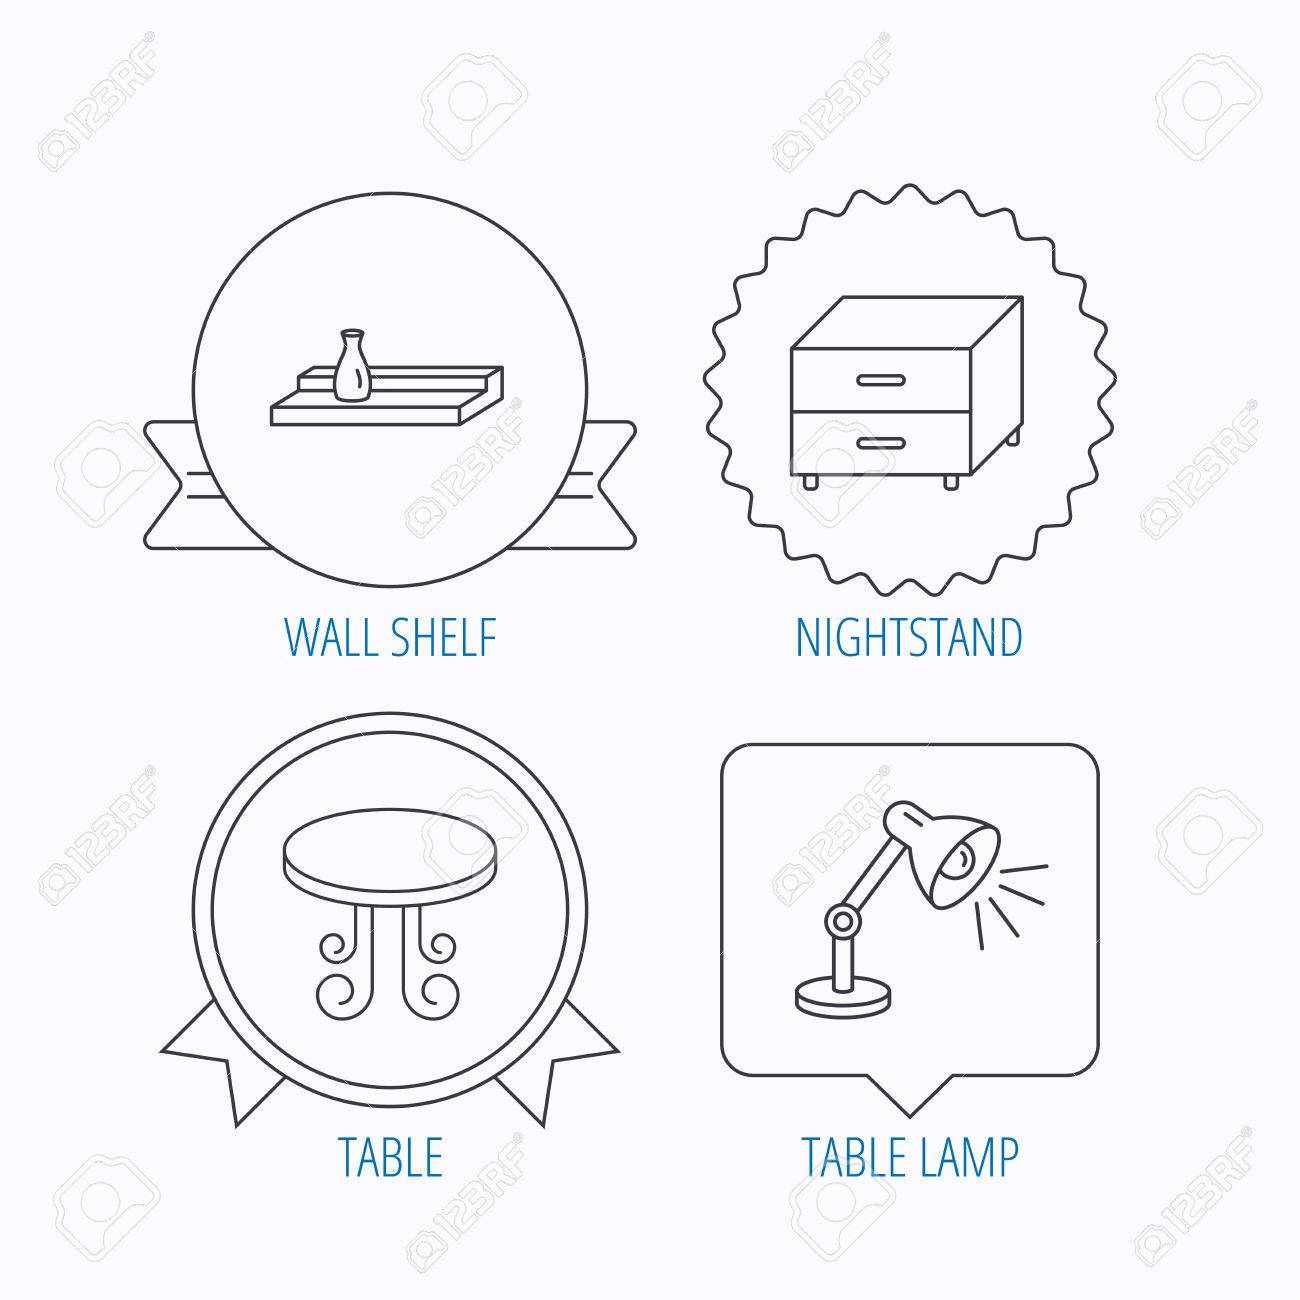 Vintage table lamp and nightstand icons wall shelf linear sign vector vintage table lamp and nightstand icons wall shelf linear sign award medal star label and speech bubble designs vector ccuart Images